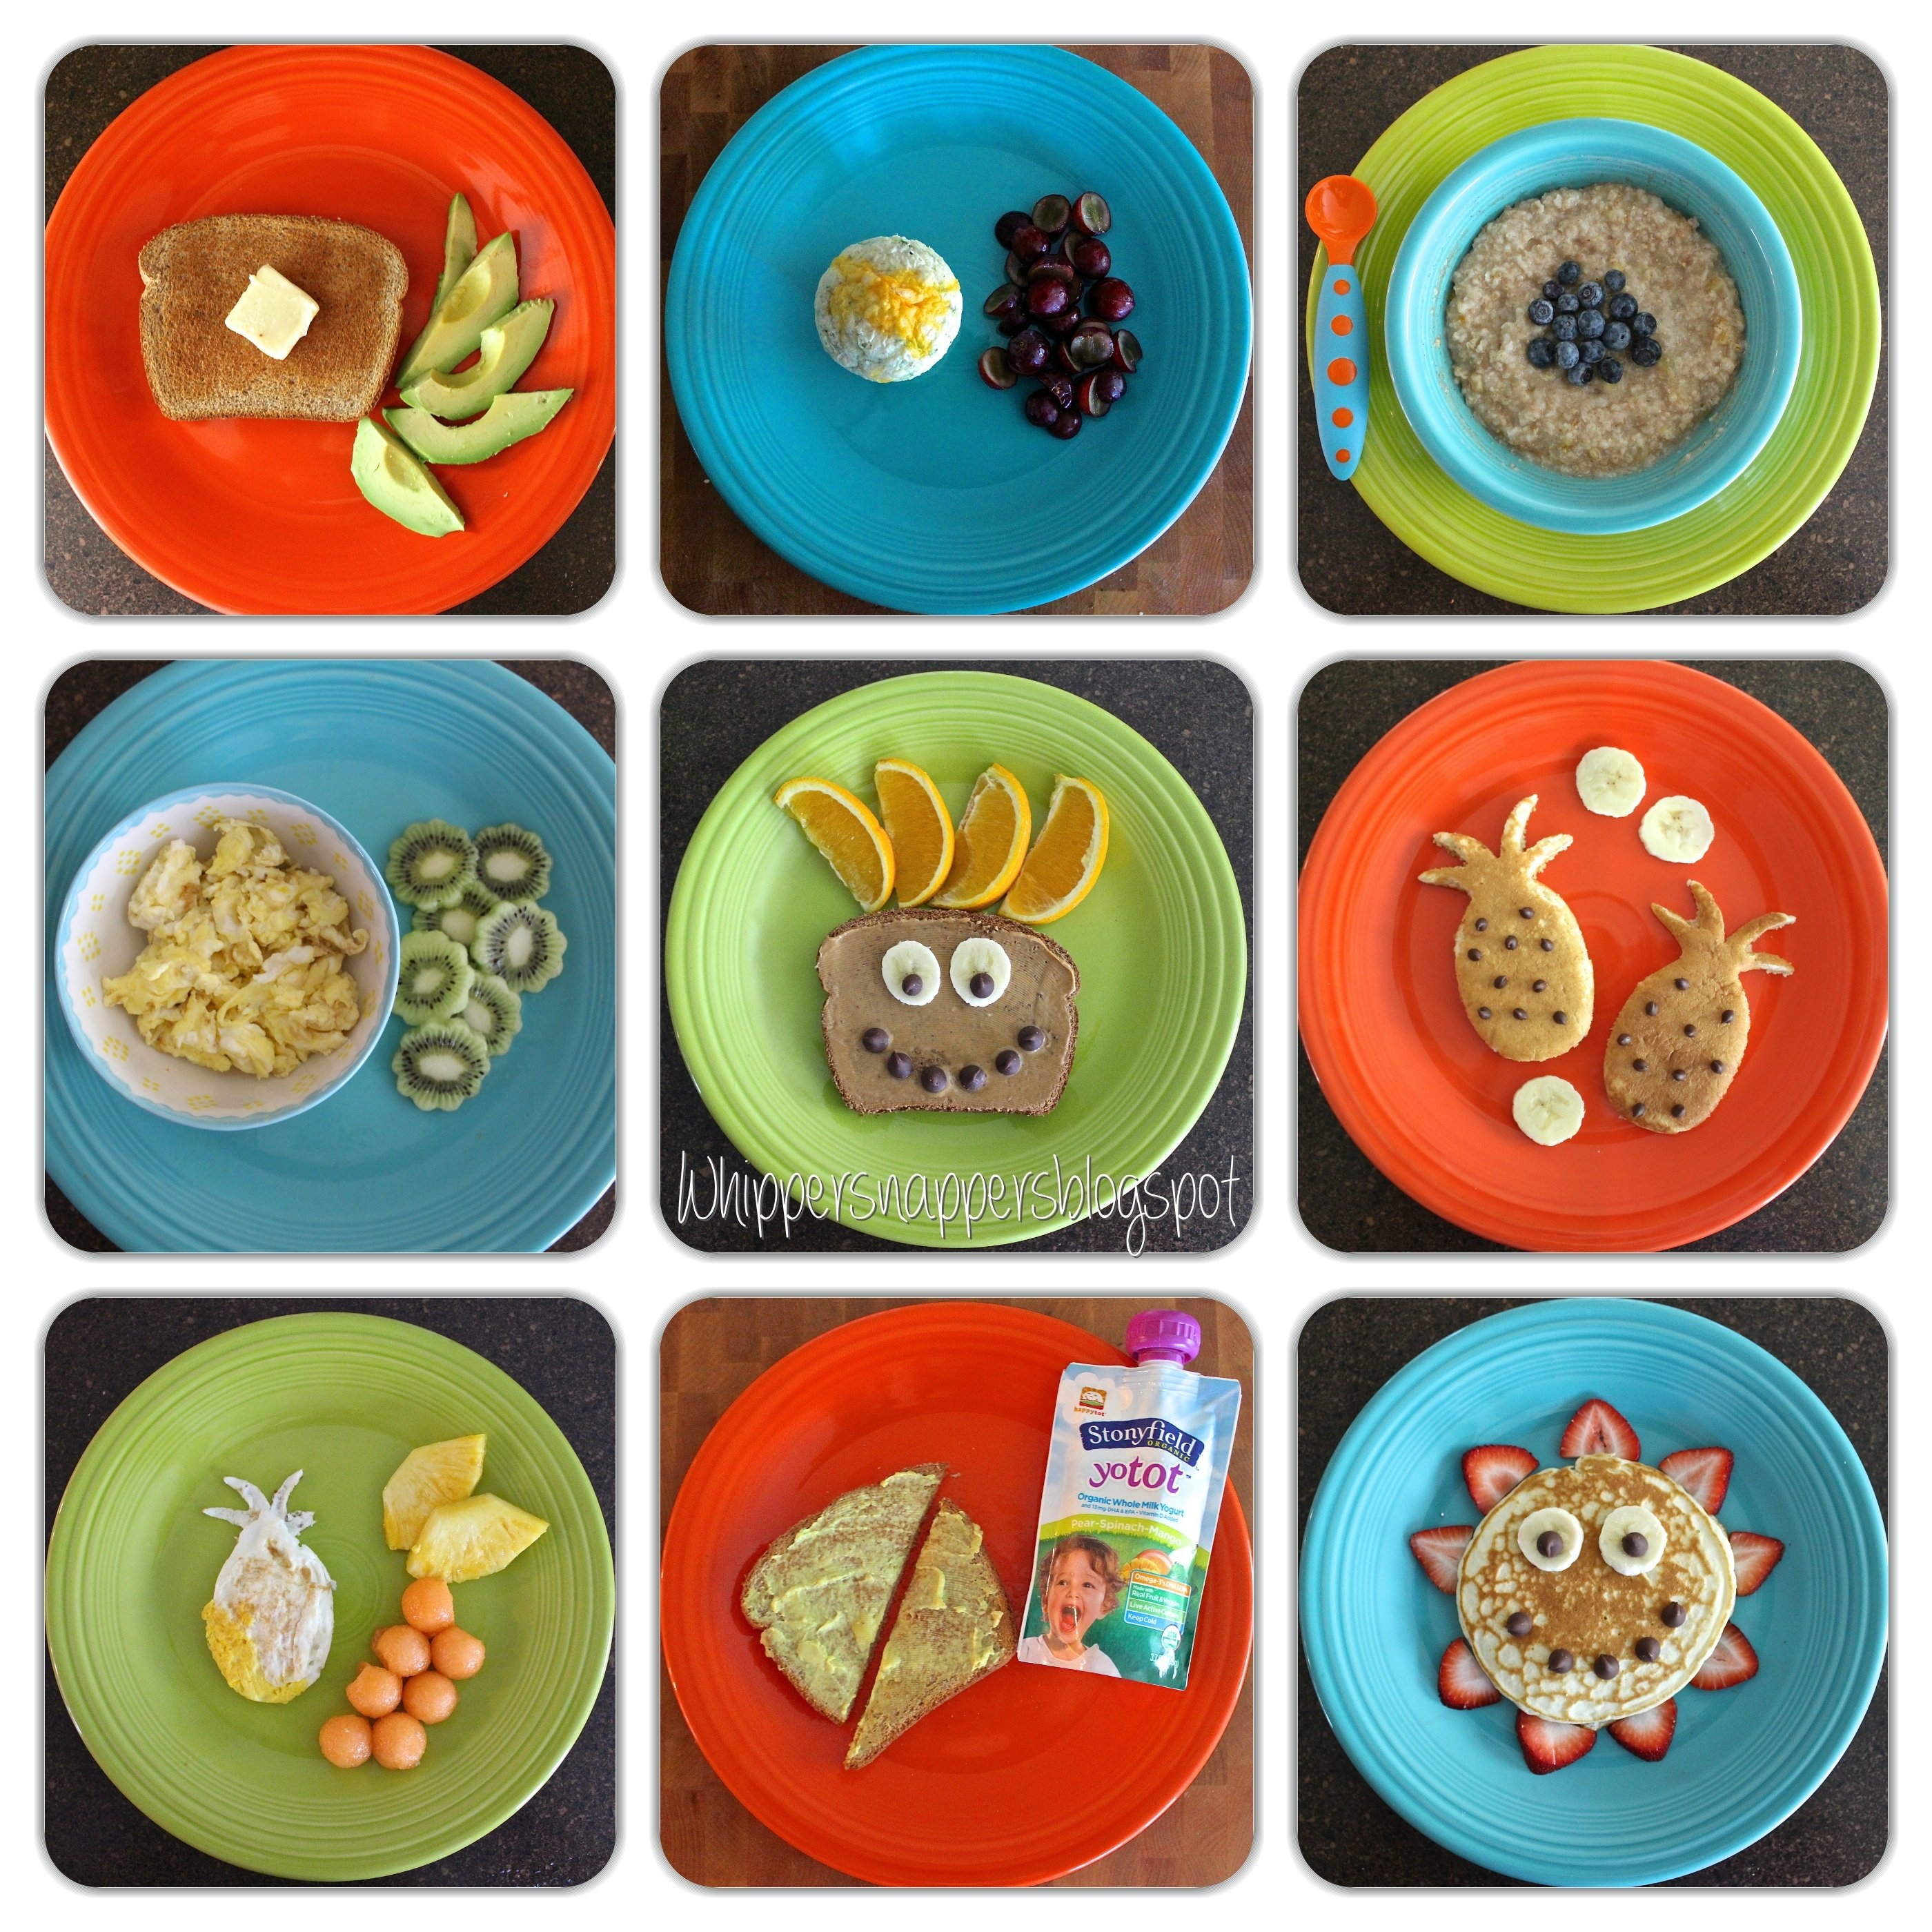 10 Most Recommended Healthy Breakfast Ideas For Toddlers kids breakfast ideas whippersnappers 2020